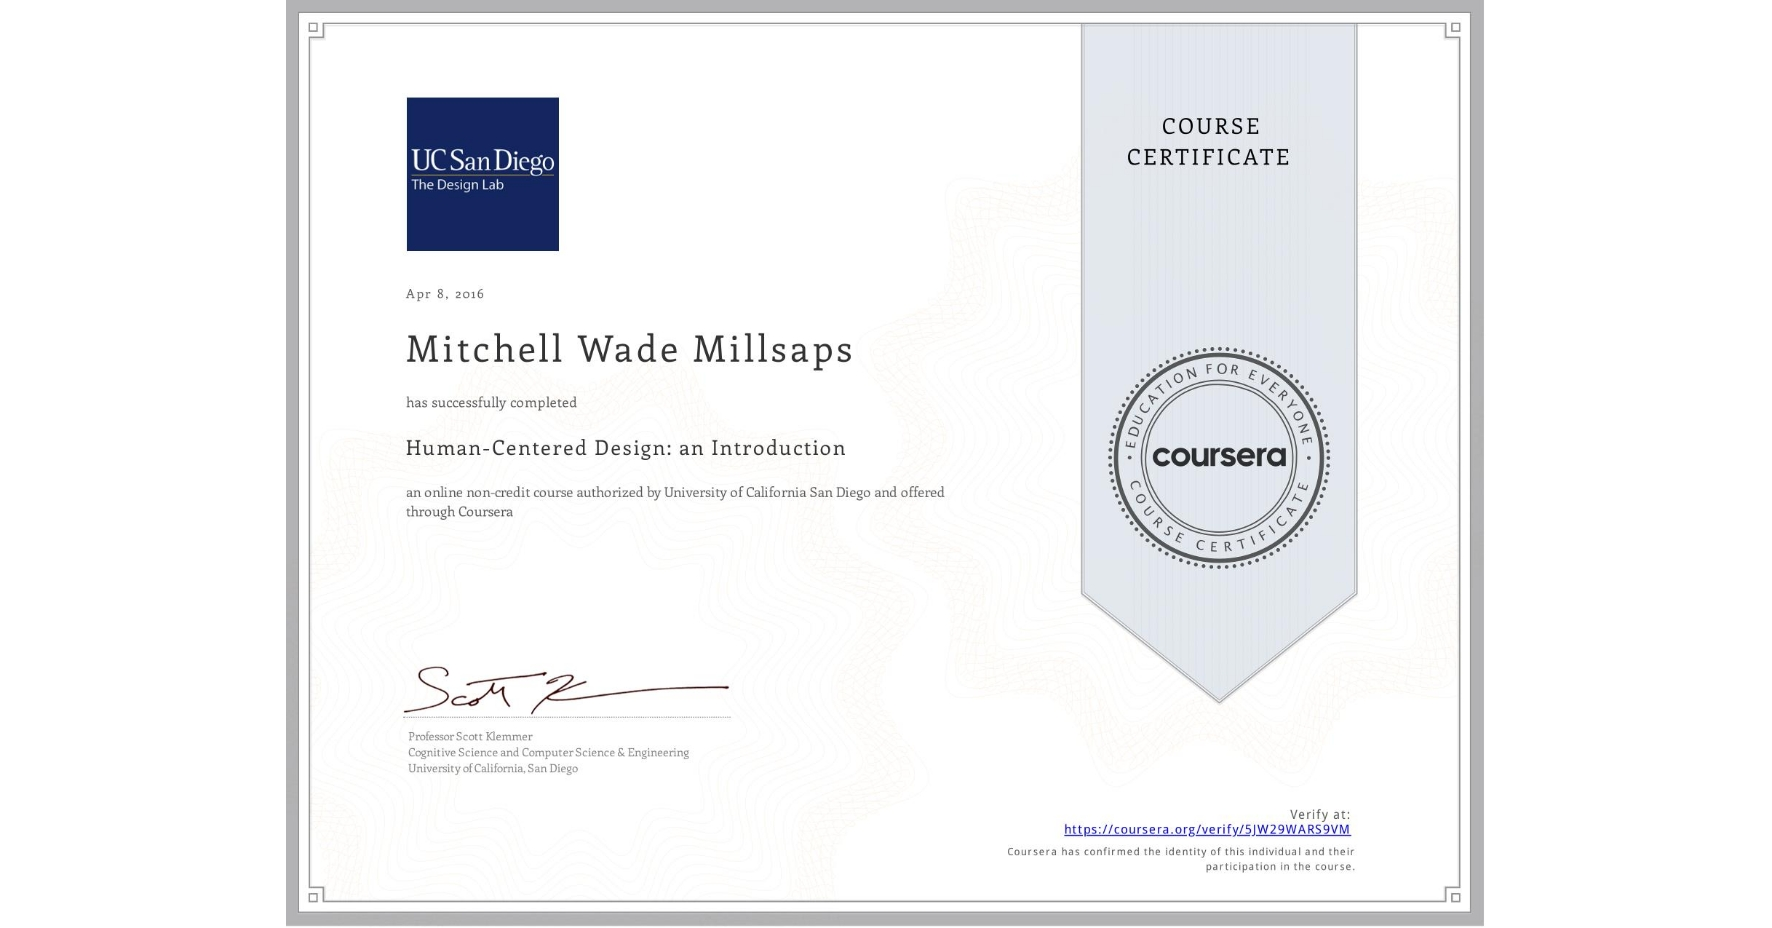 View certificate for Mitchell Wade Millsaps, Human-Centered Design: an Introduction, an online non-credit course authorized by University of California San Diego and offered through Coursera